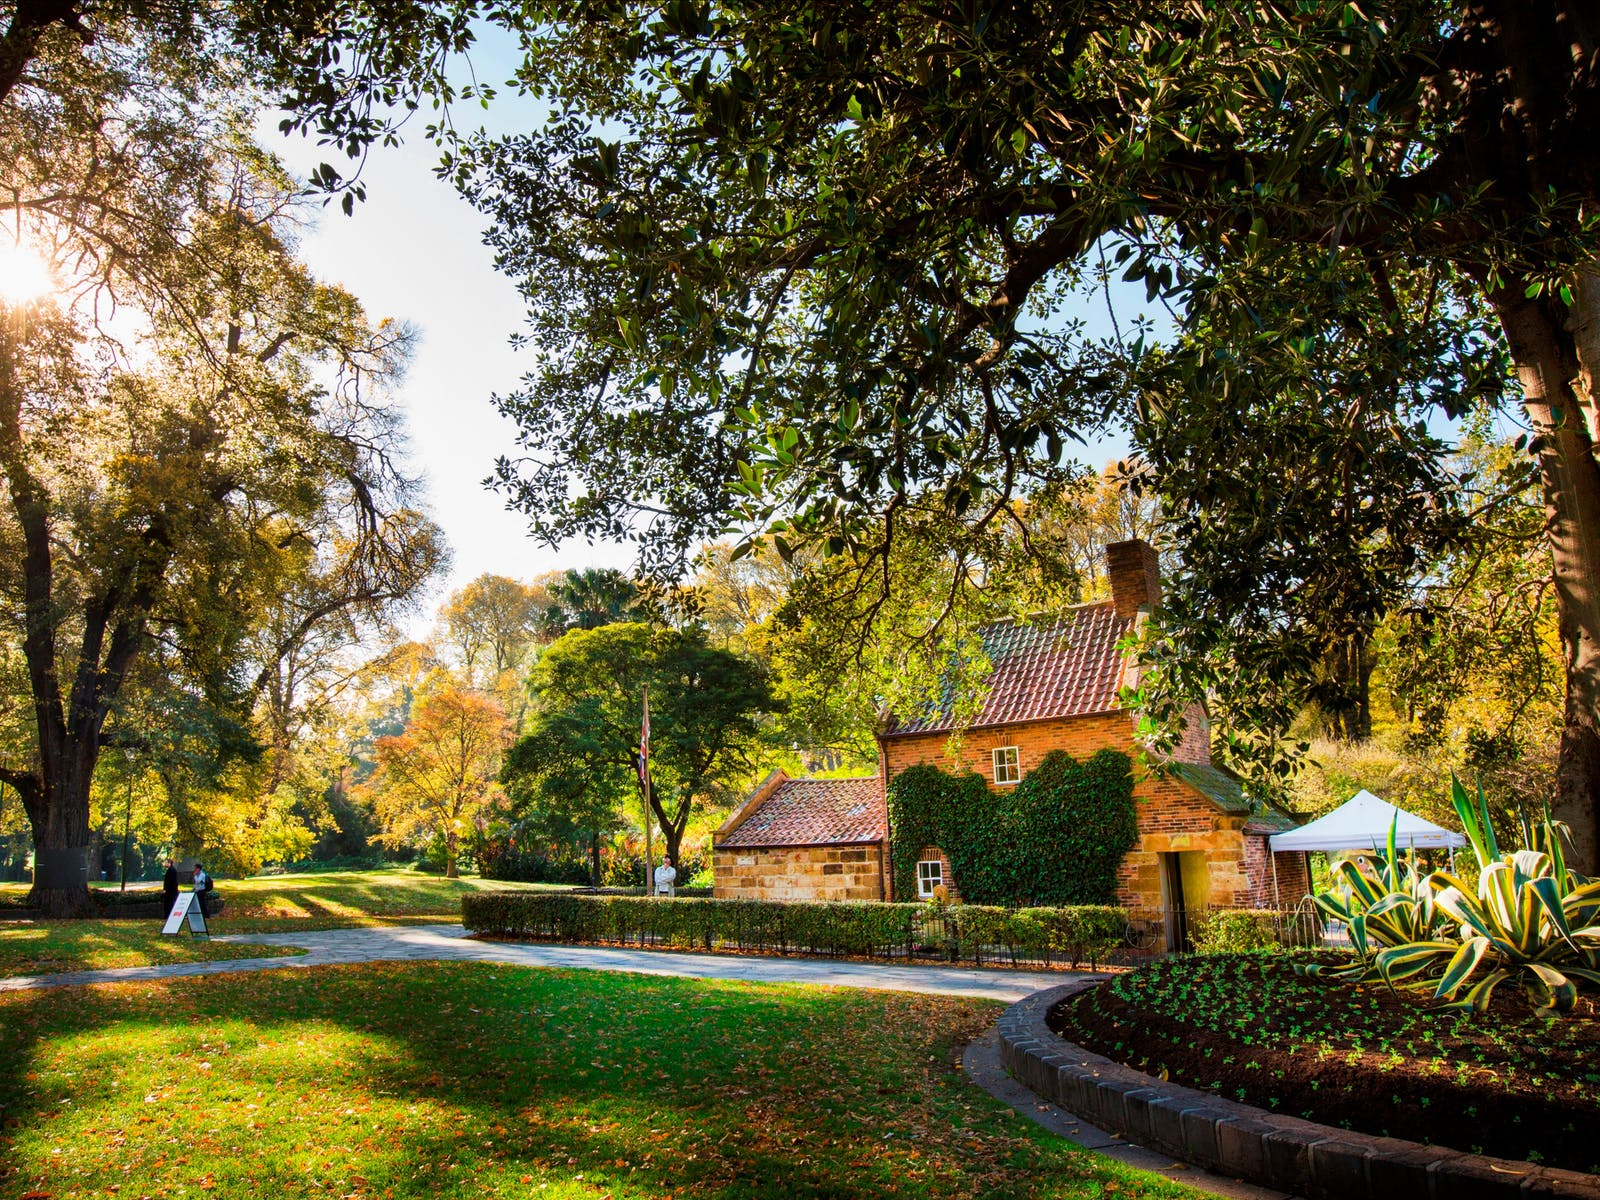 Scenic Cooks' Cottage set amongst the Fitzroy Gardens on a sunny morning